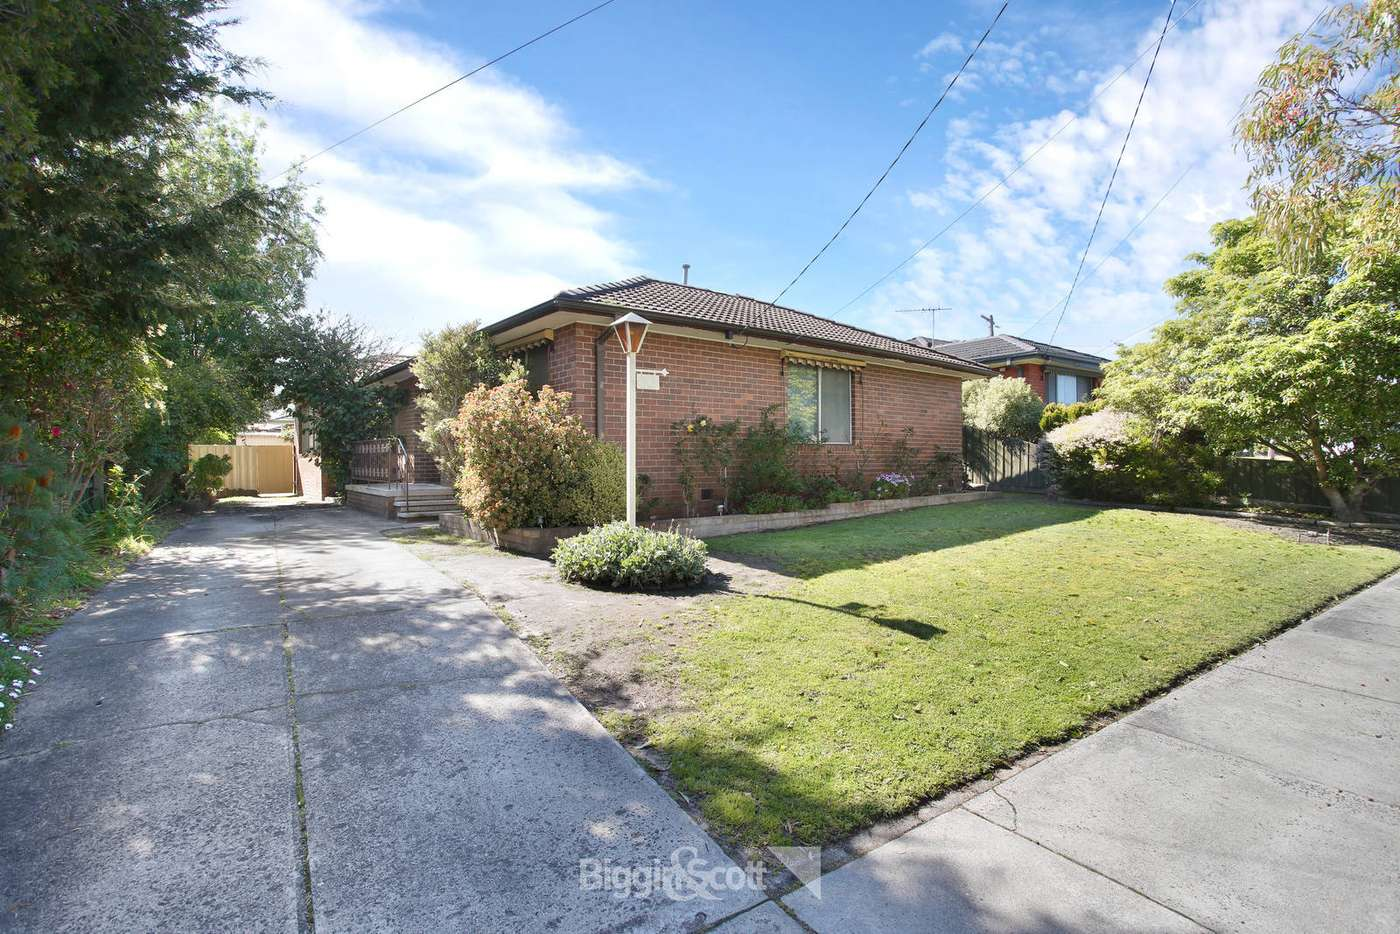 Main view of Homely house listing, 33 Silvertop Crescent, Frankston North VIC 3200